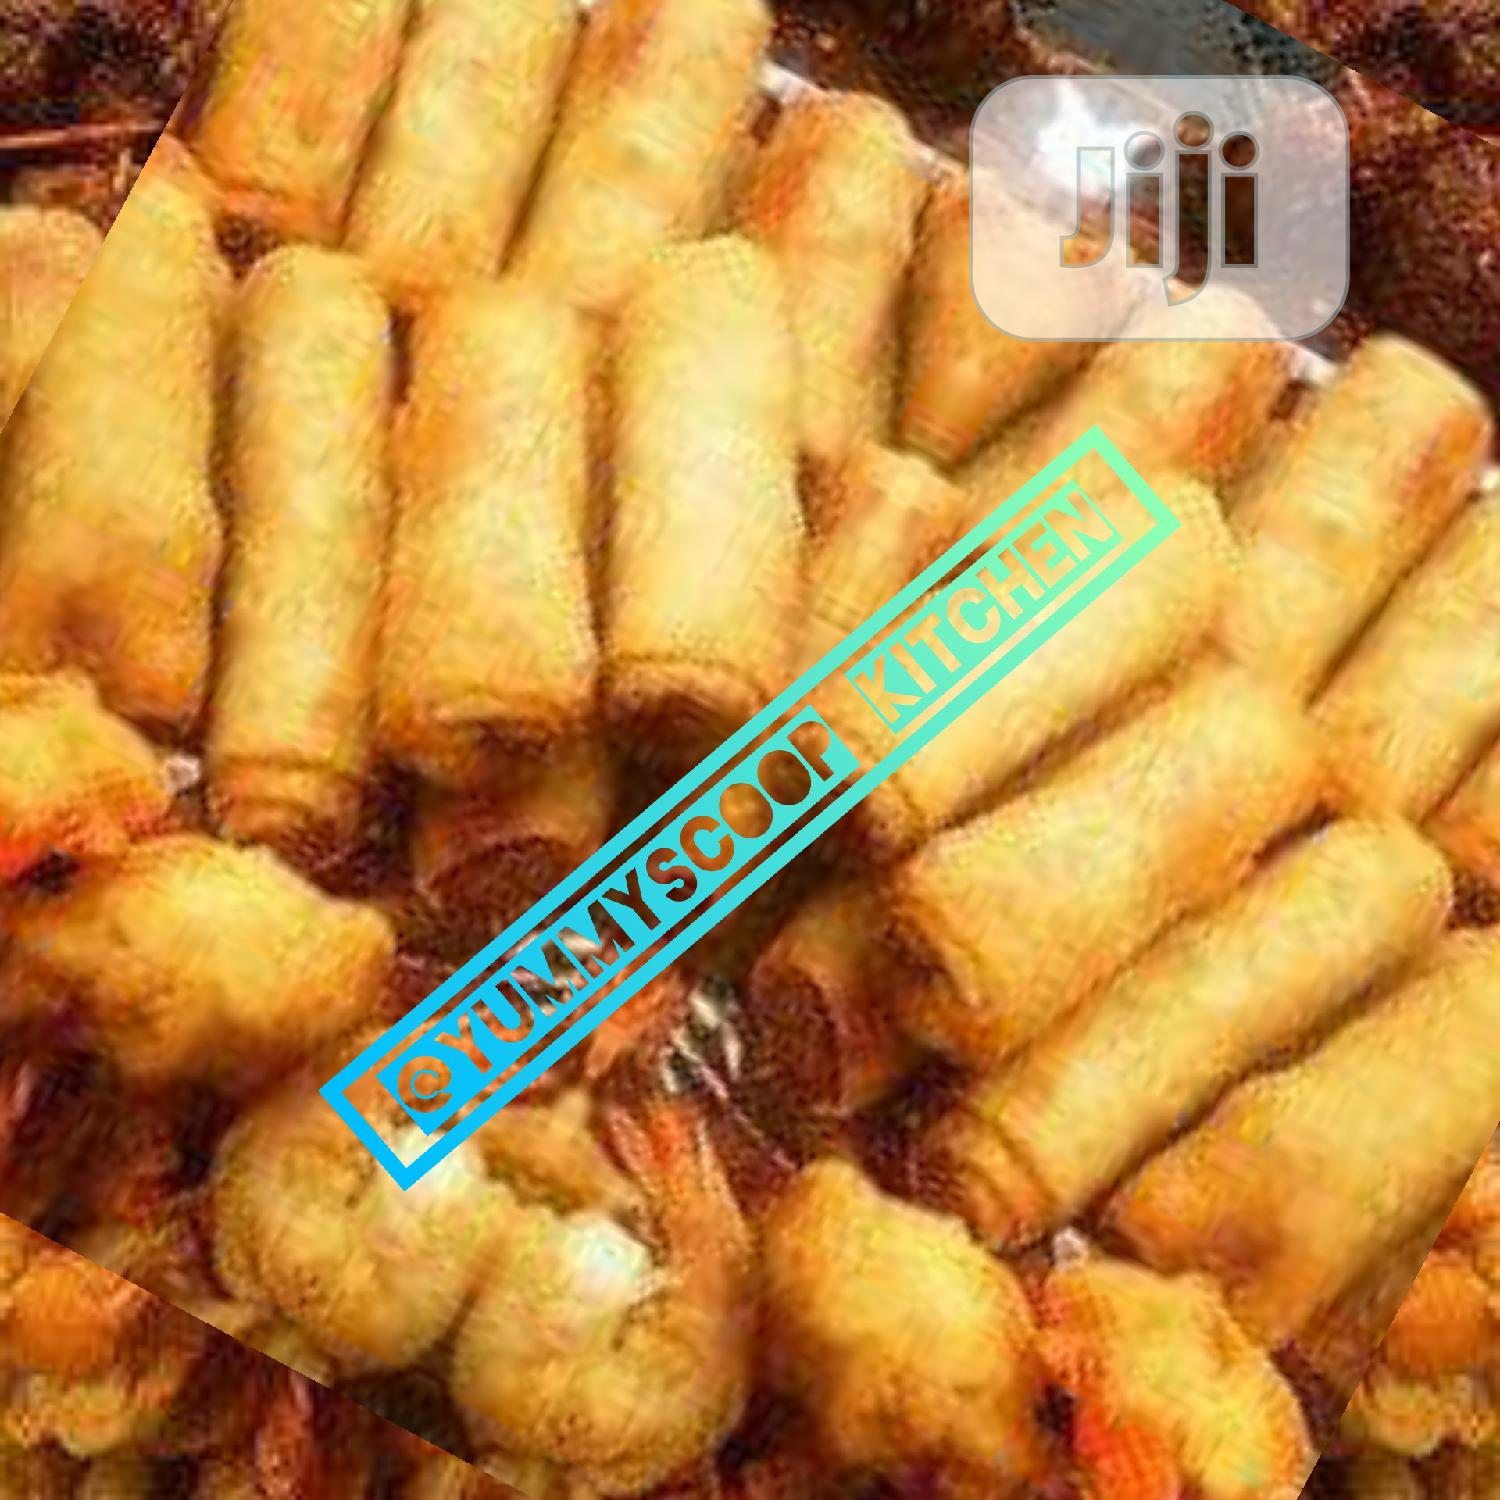 A Full Tray Of Small Chops